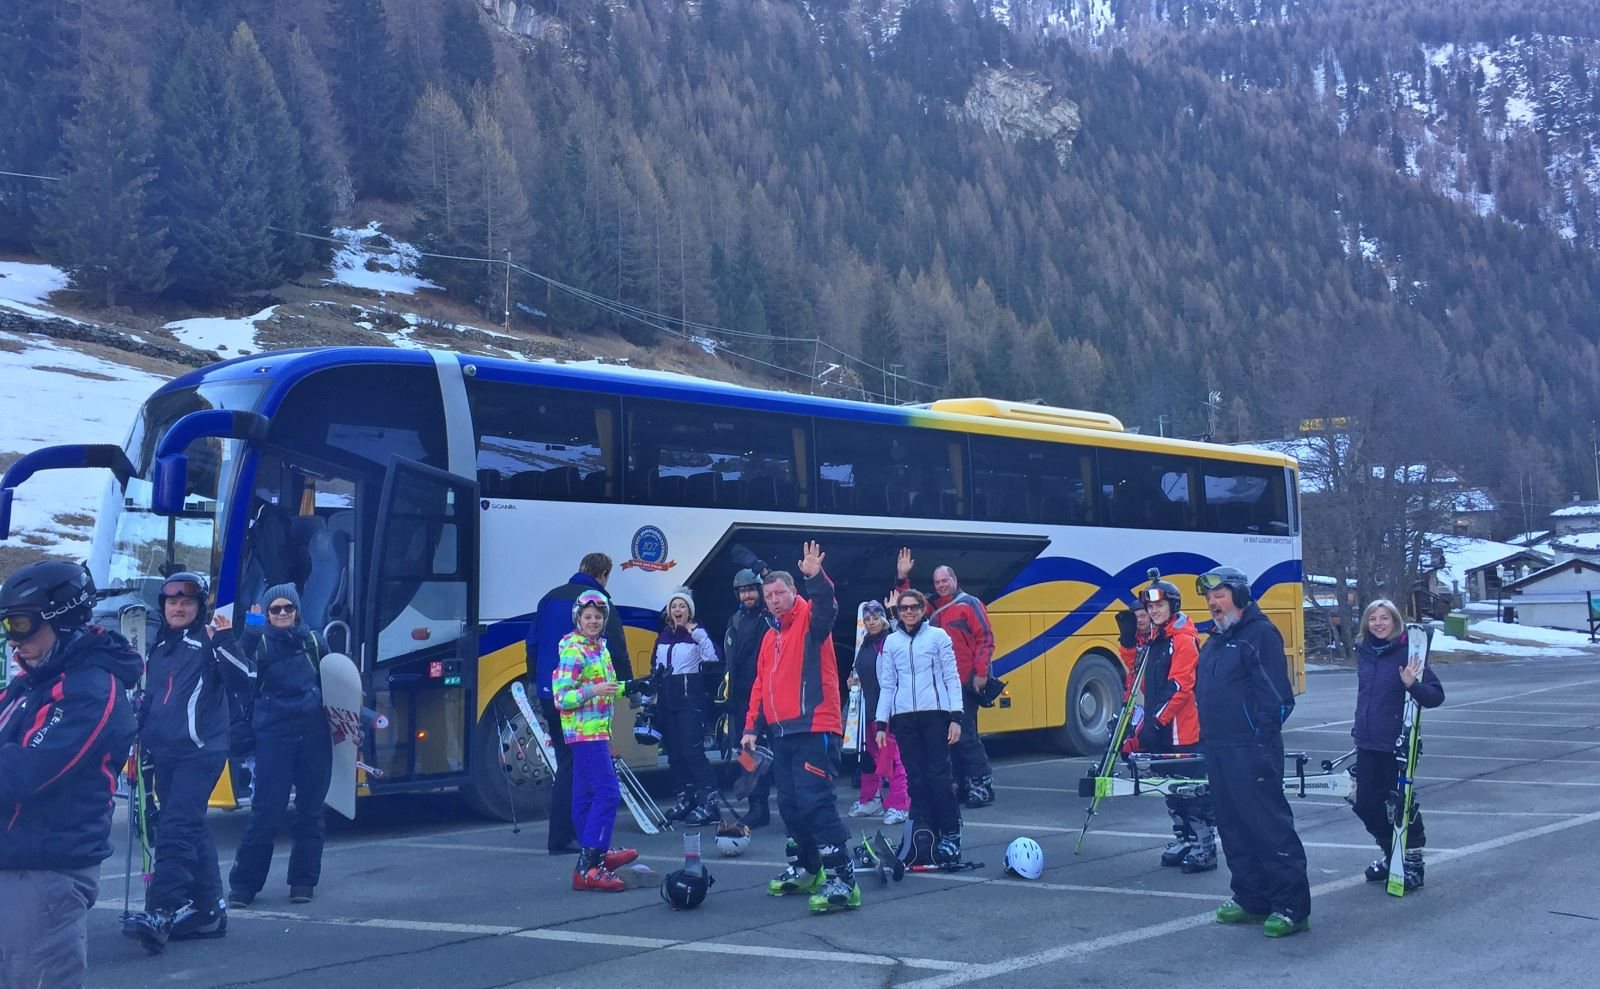 Coach Hire for Ski Trips